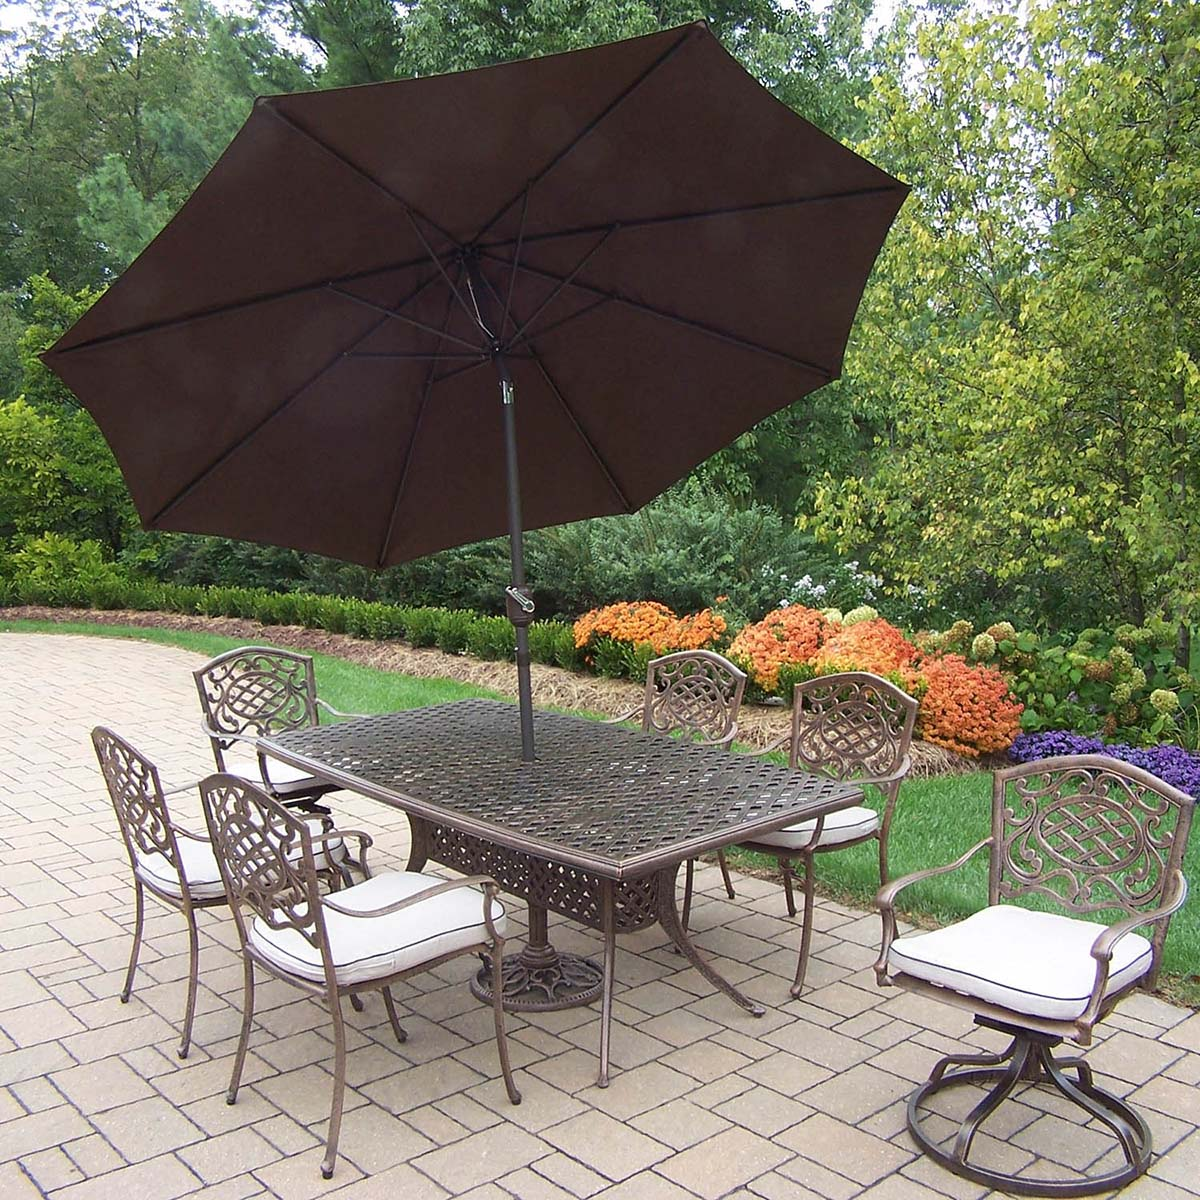 Tasteful Mississippi Set Table Chairs Rockers Umbrella Product Photo